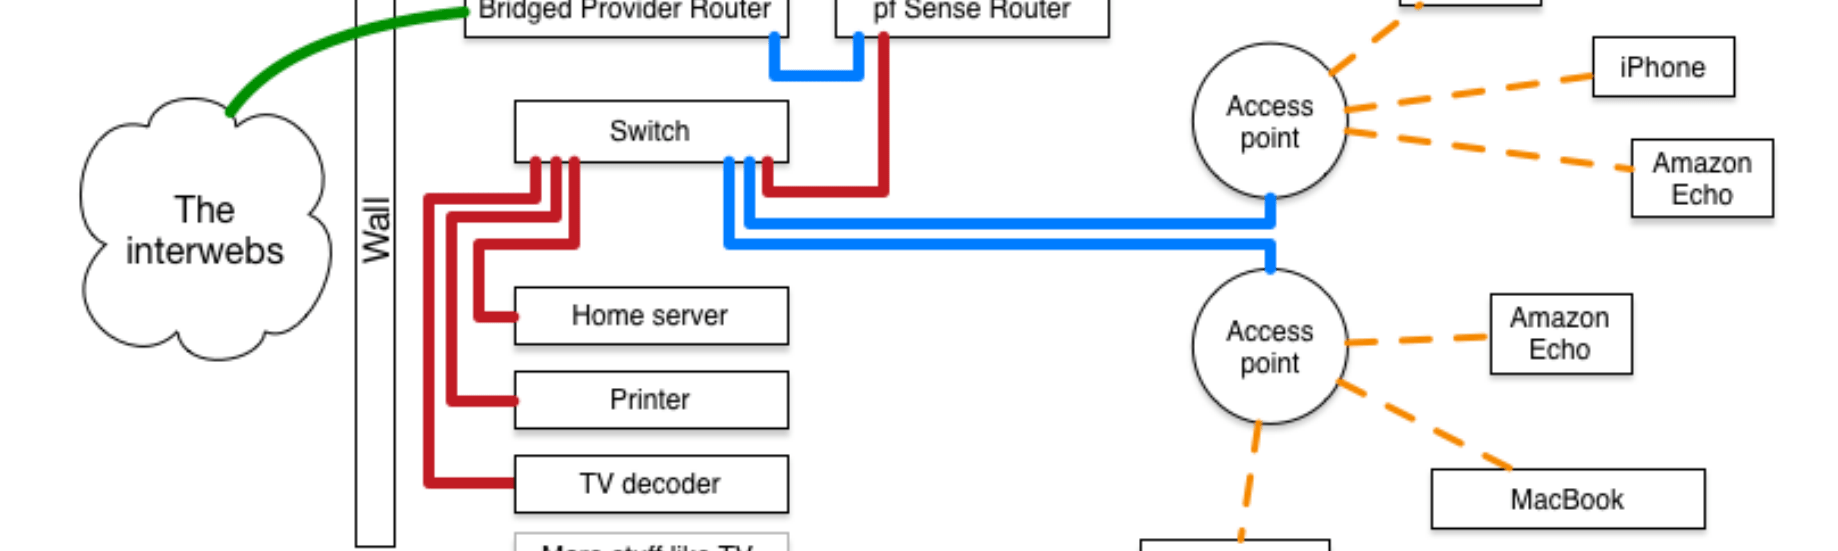 hight resolution of home networking 2 0